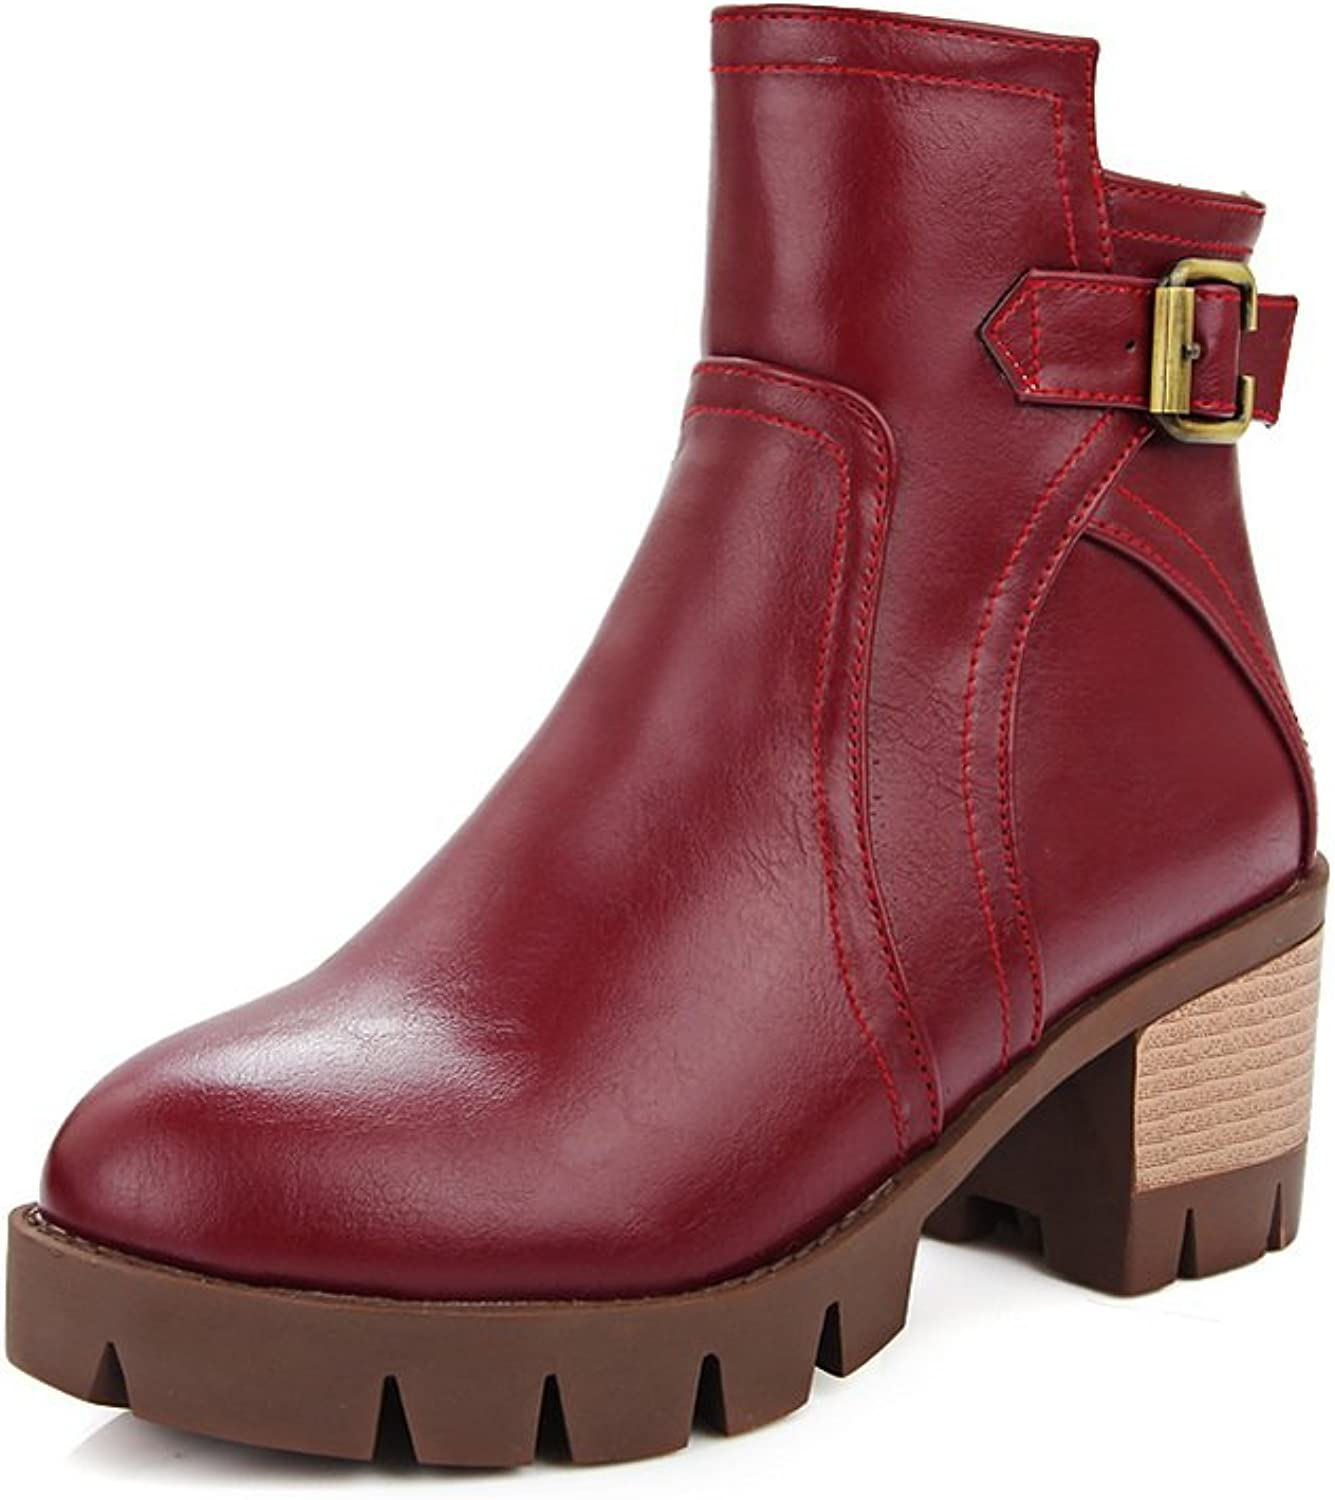 AdeeSu Womens Pull-On Buckle Round Toe Imitated Leather Boots